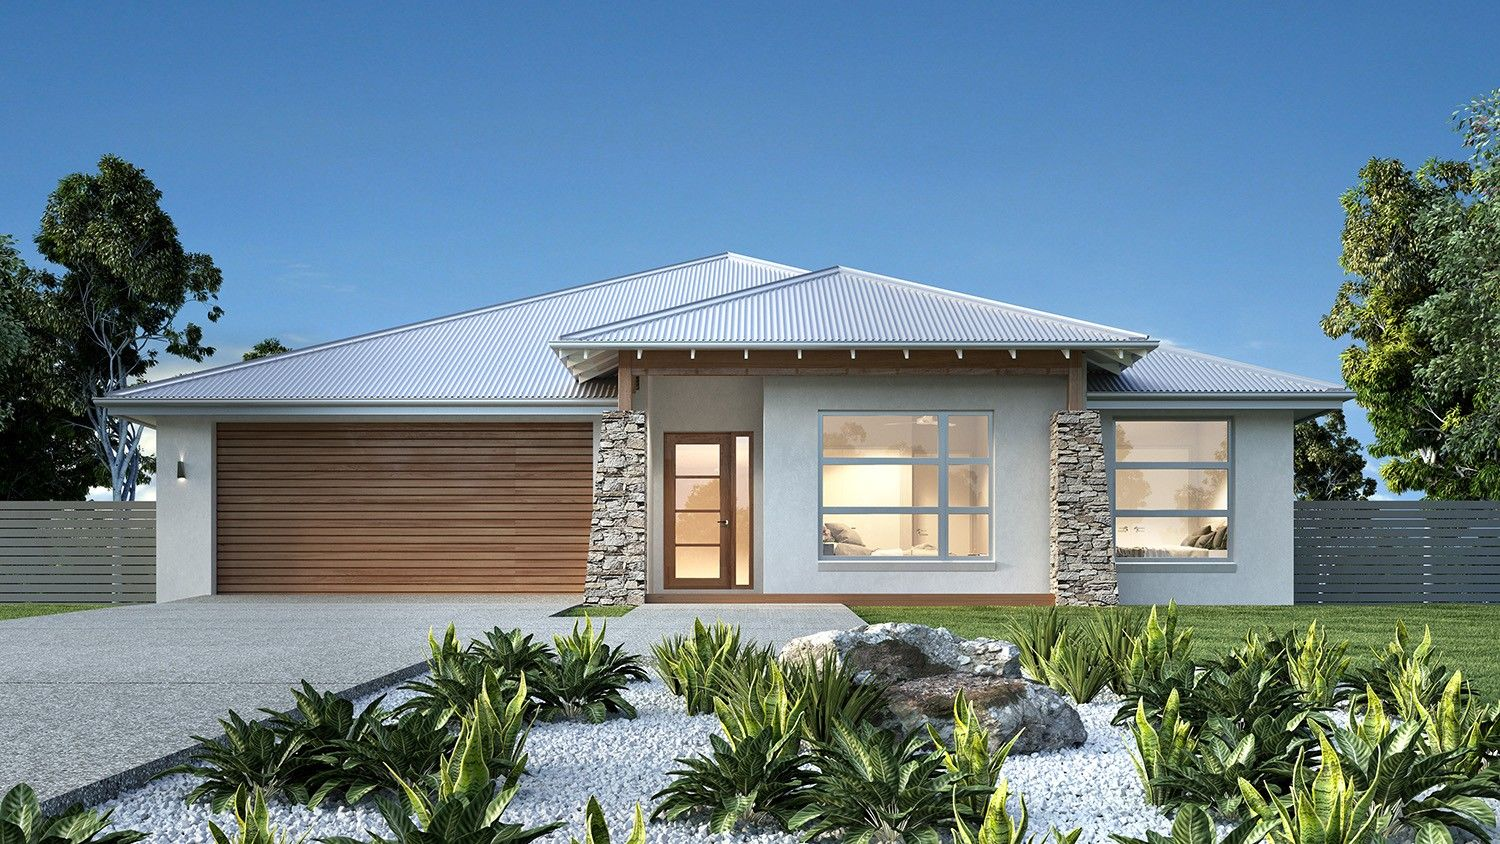 New Lot Titled Land Ready to Build, Ocean Grove VIC 3226, Image 1